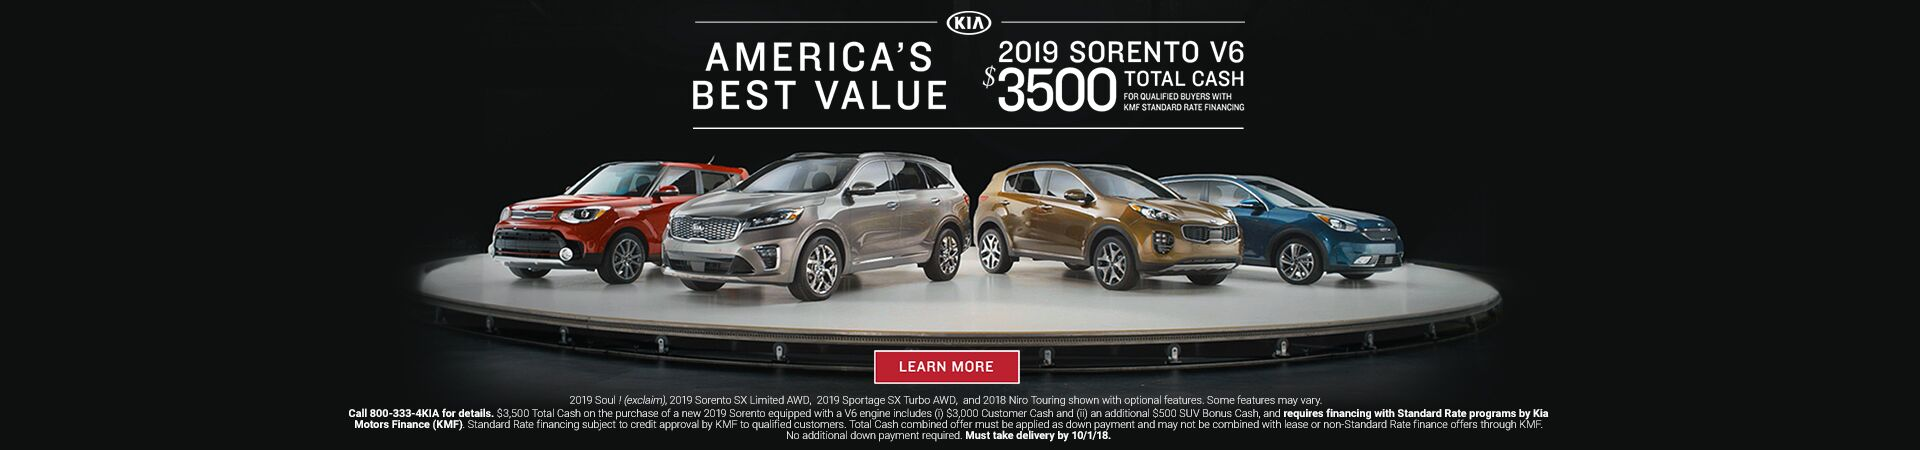 America's Best Value 2019 Sorento Evansville Kia